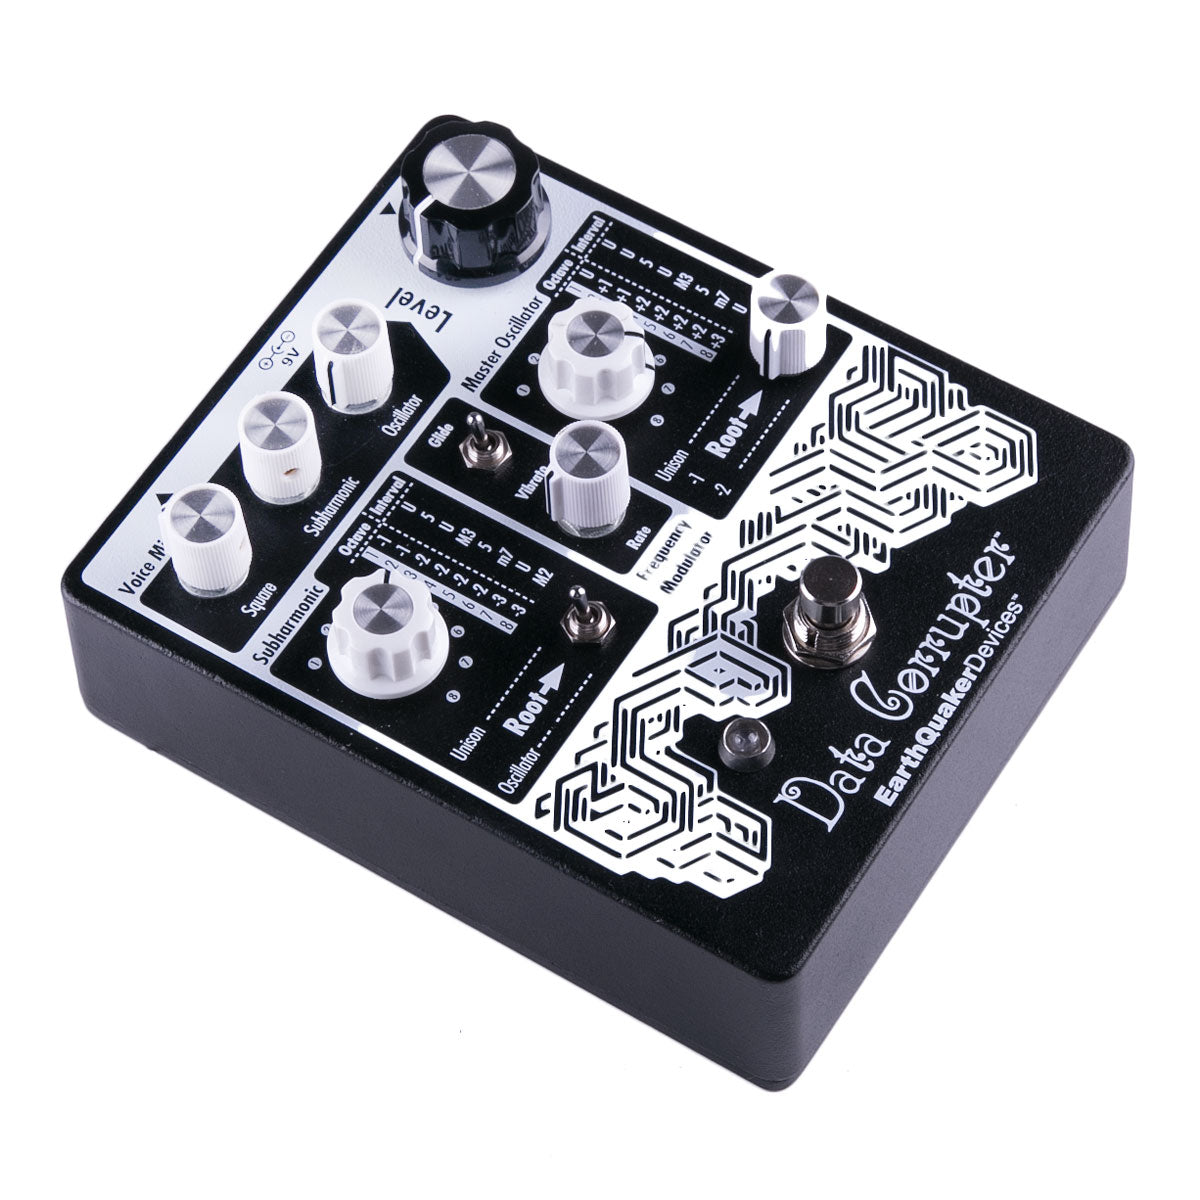 Used Earthquaker Devices Data Corrupter, Modulated Monophonic Oscillator